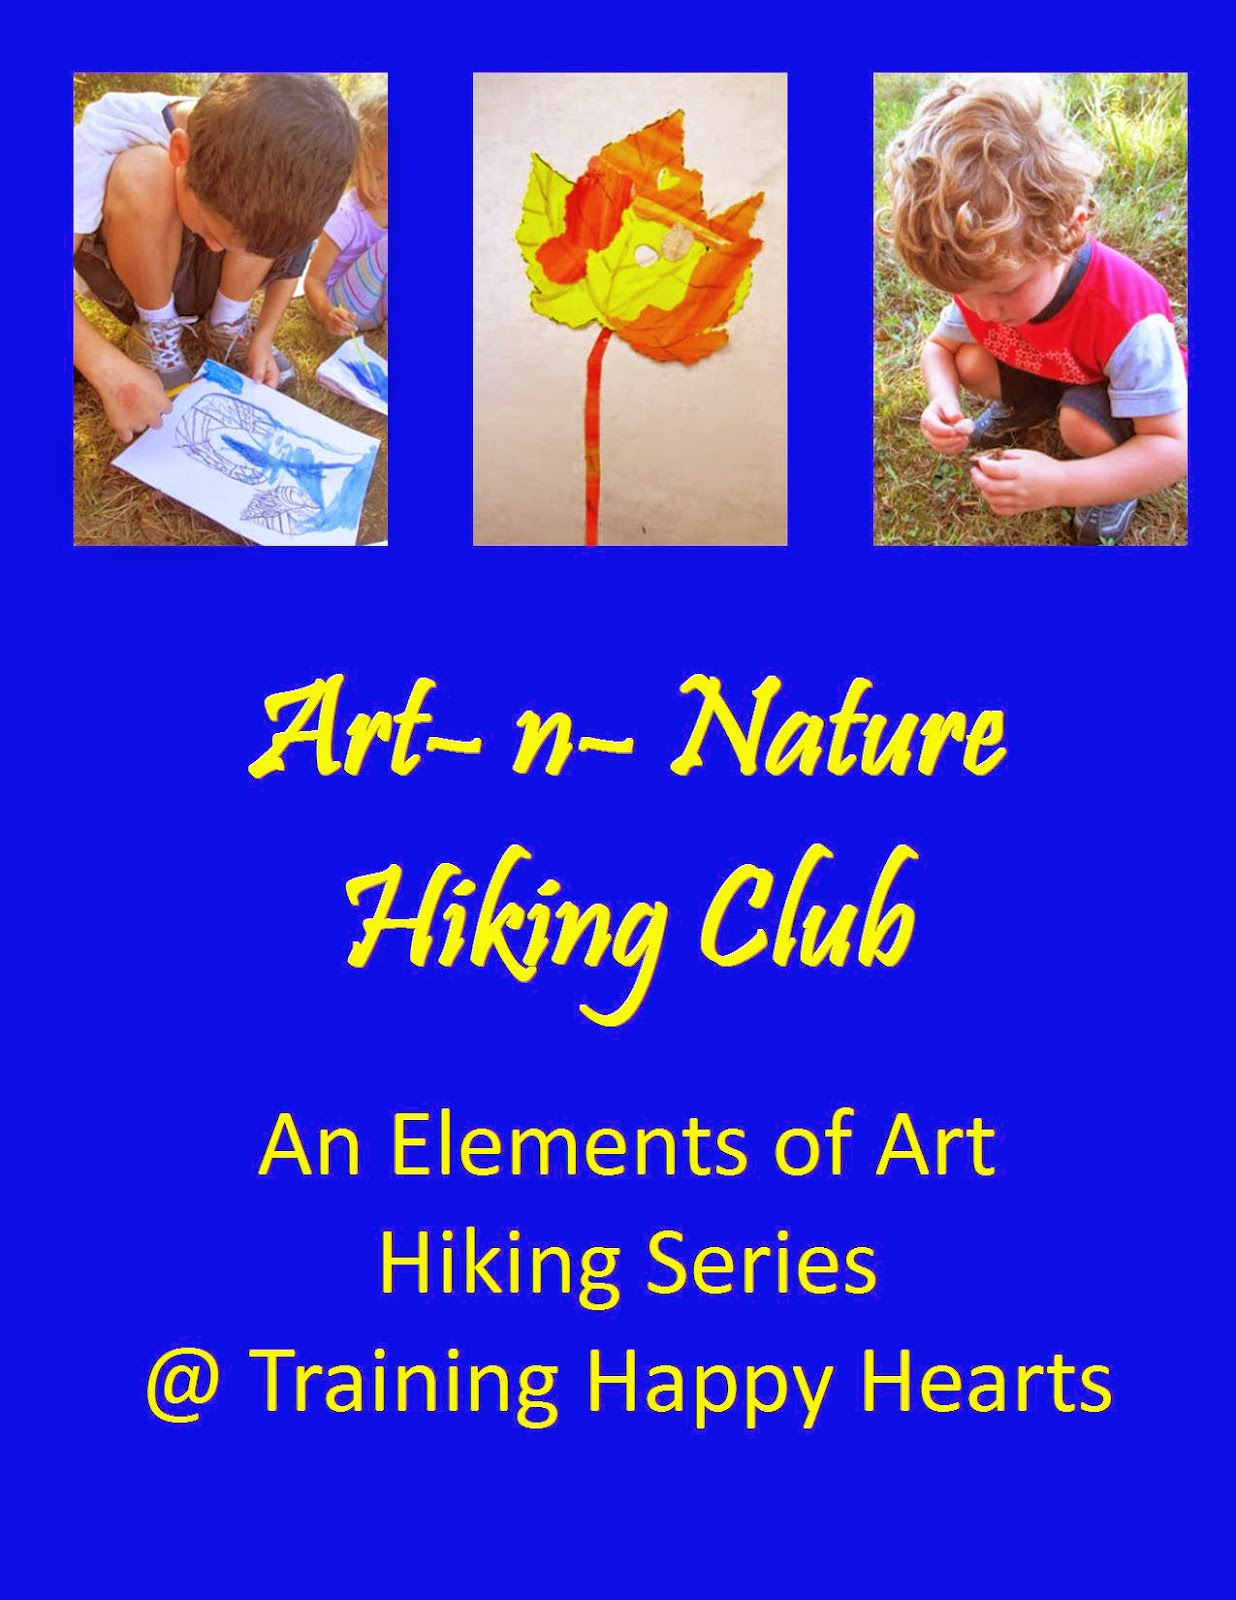 http://traininghappyhearts.blogspot.com/search/label/Art-n-Nature%20Series